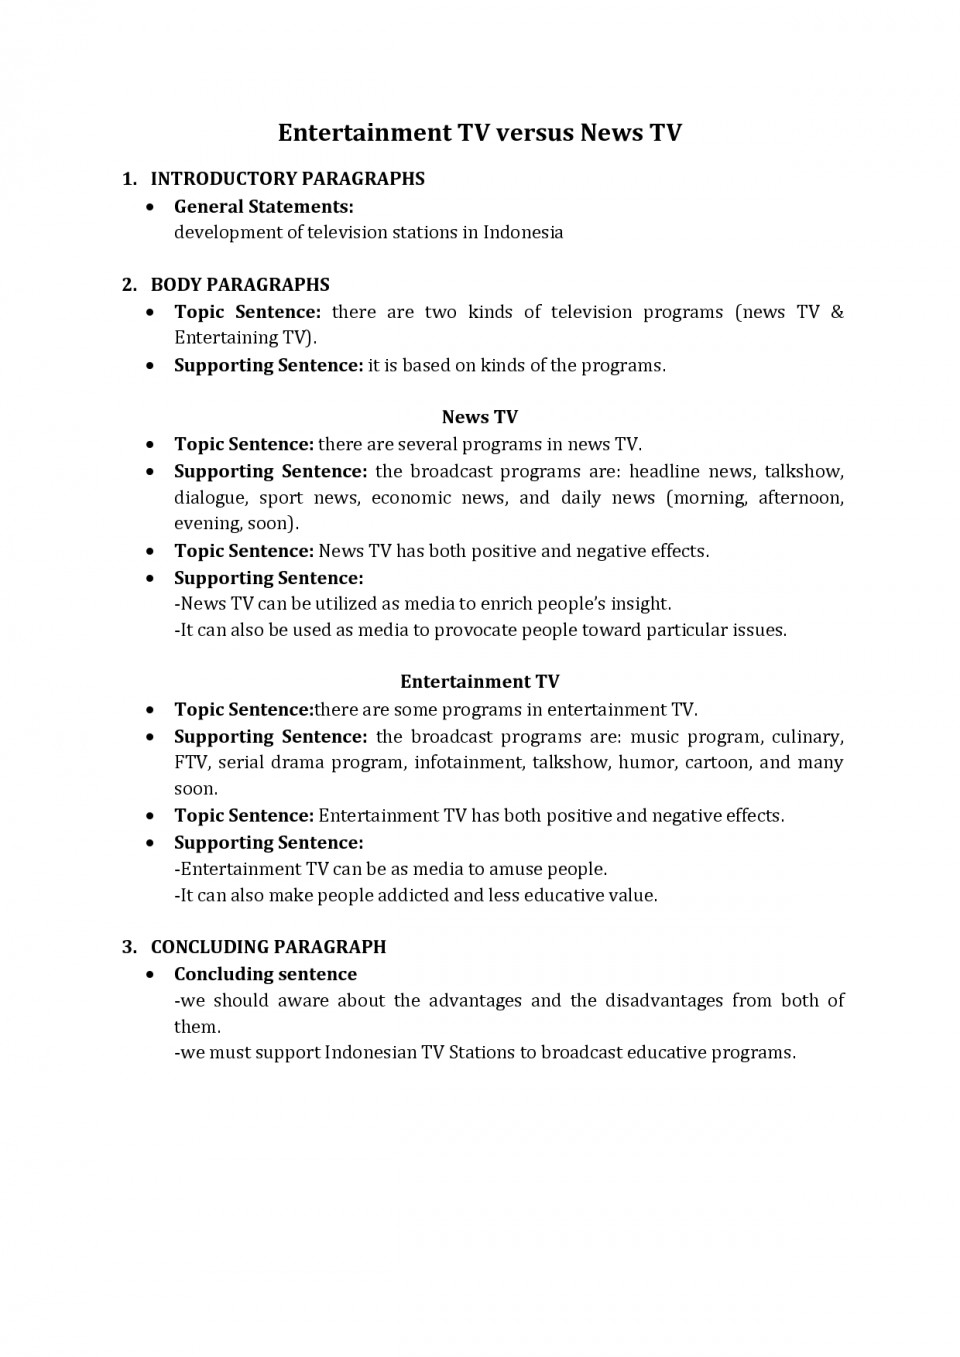 005 Fbunmxinib How To Write An Essay Outline Excellent In Mla Format College 960